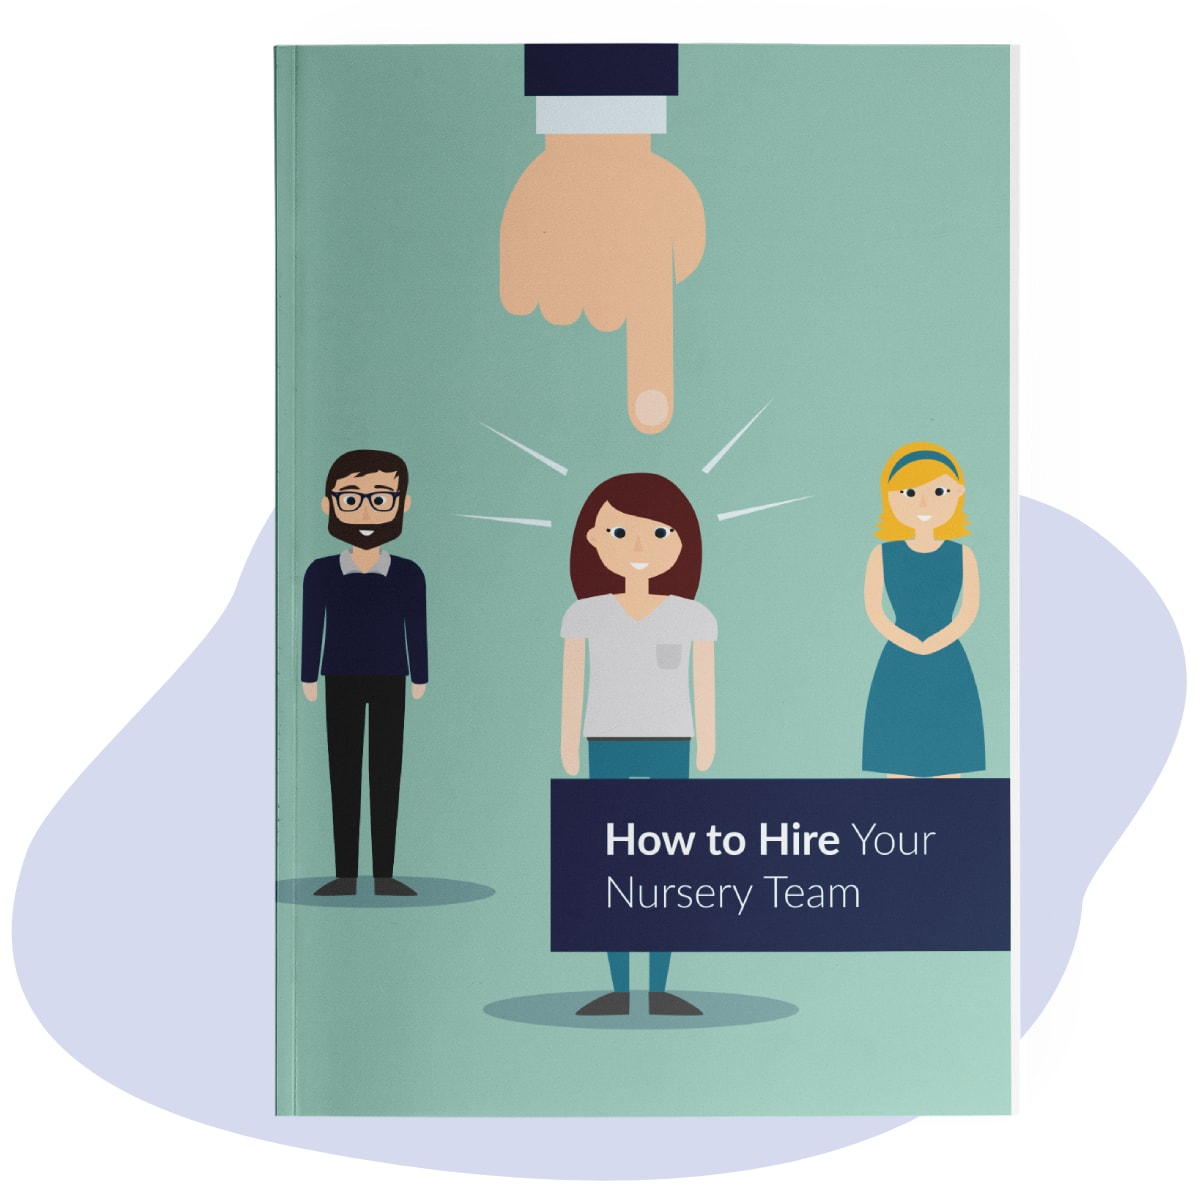 How to Hire Your Nursery Team